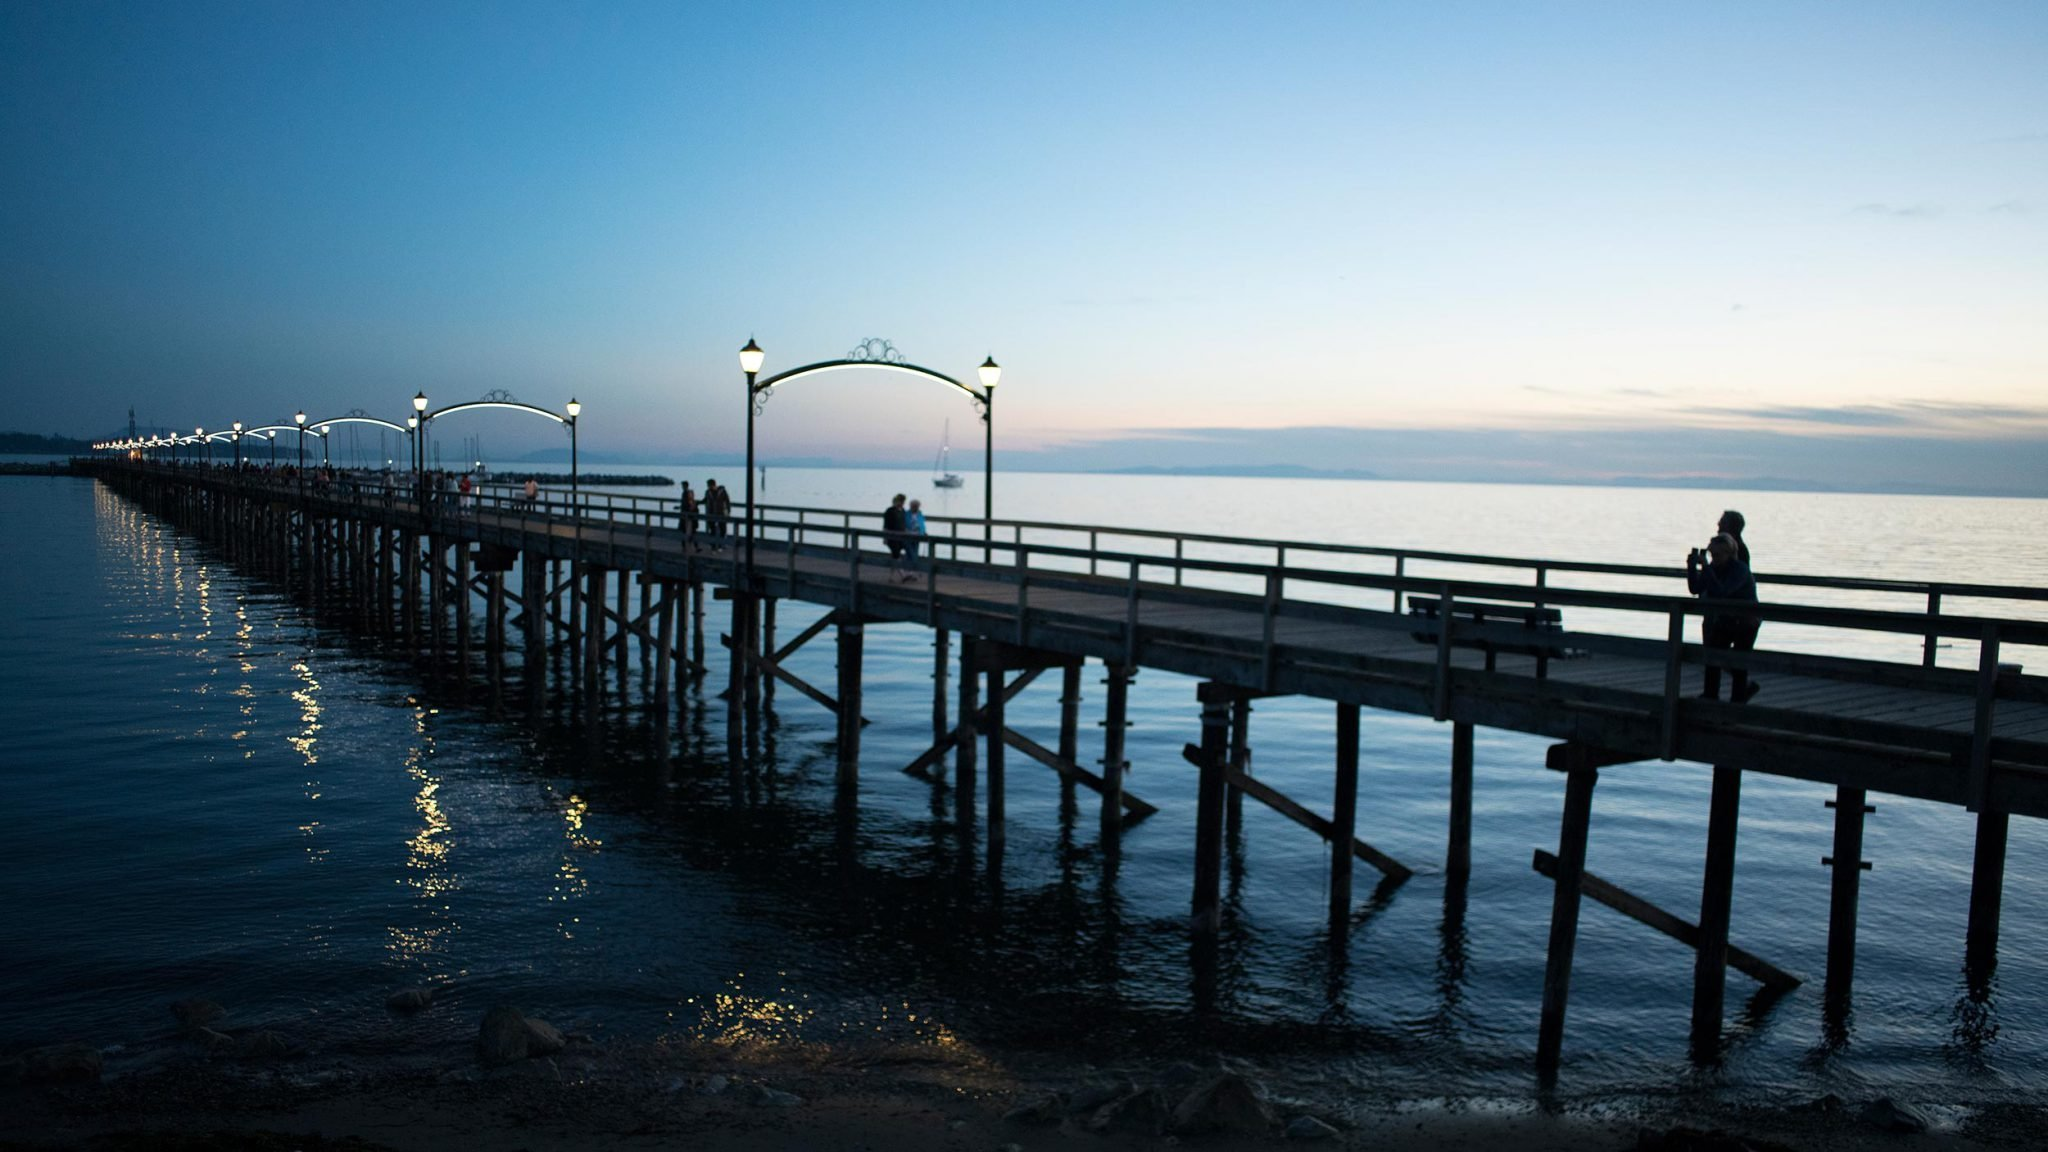 The Pier At Night!